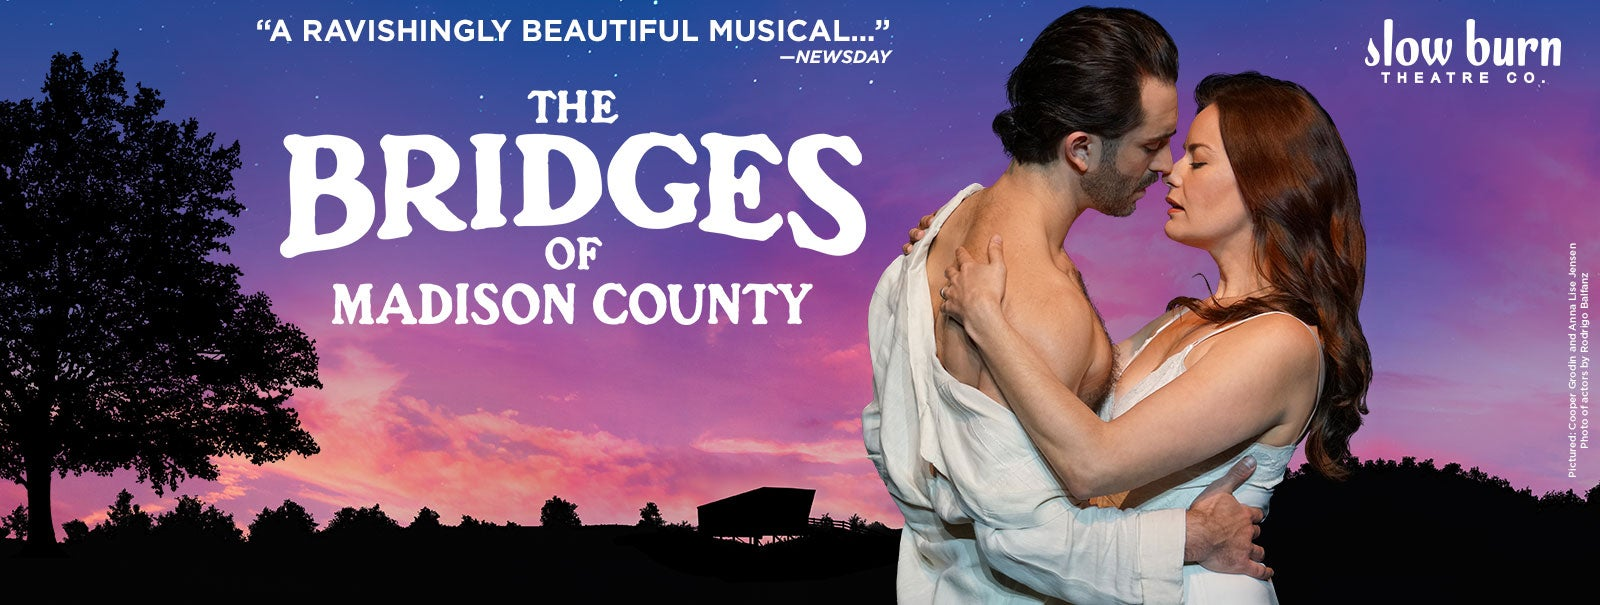 More Info - The Bridges of Madison County